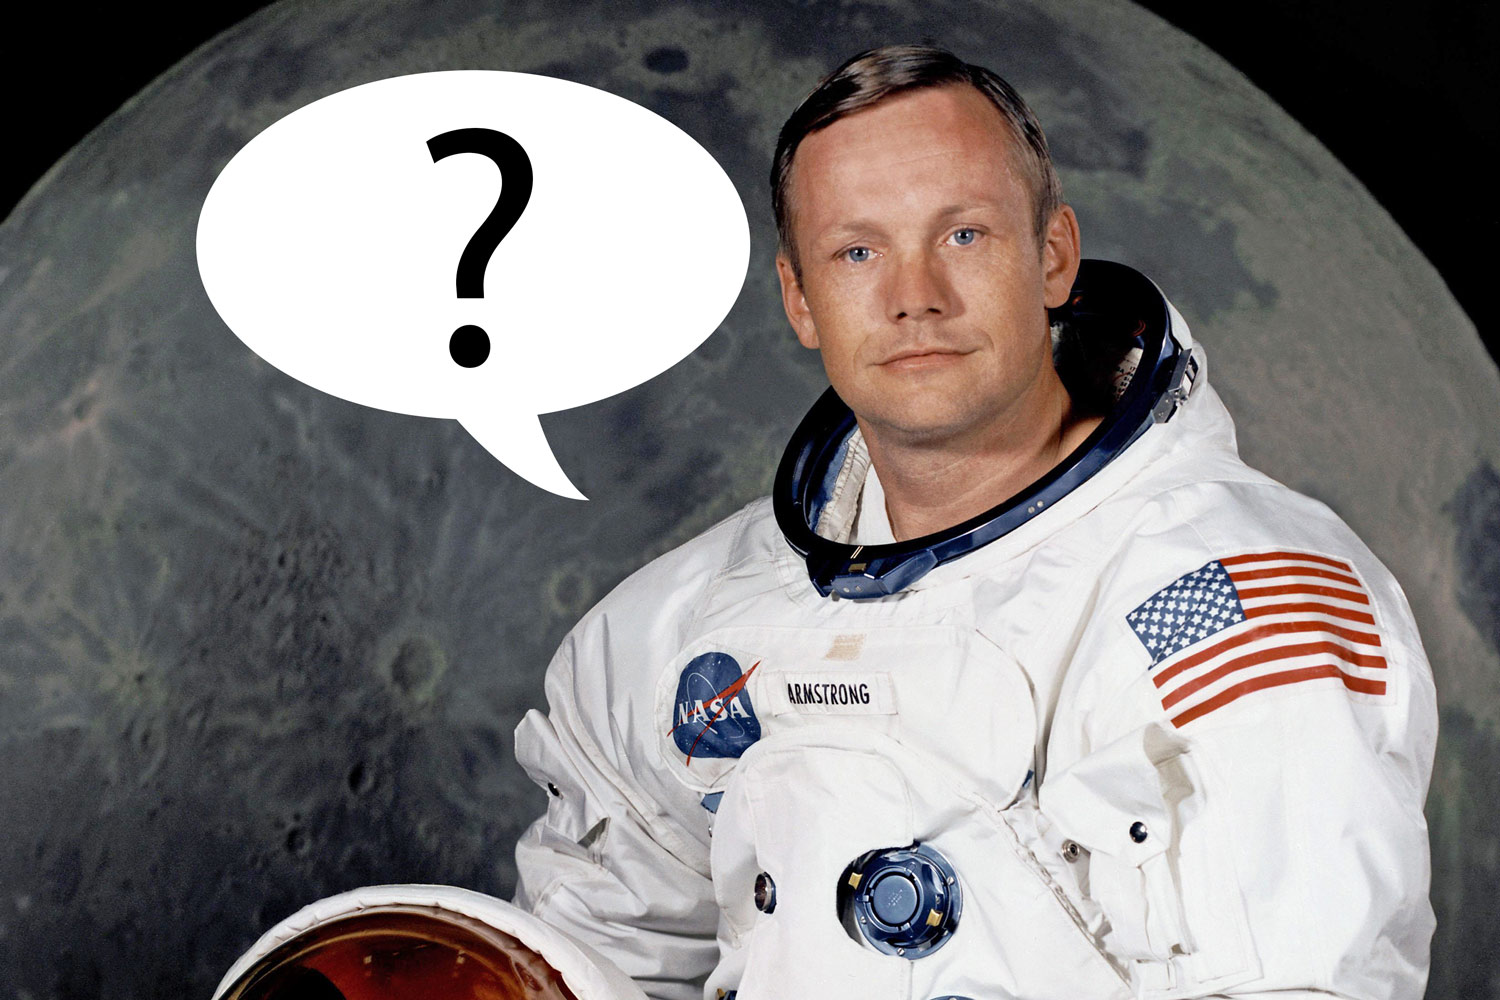 Did we mishear Neil Armstrong's famous first words on the Moon?